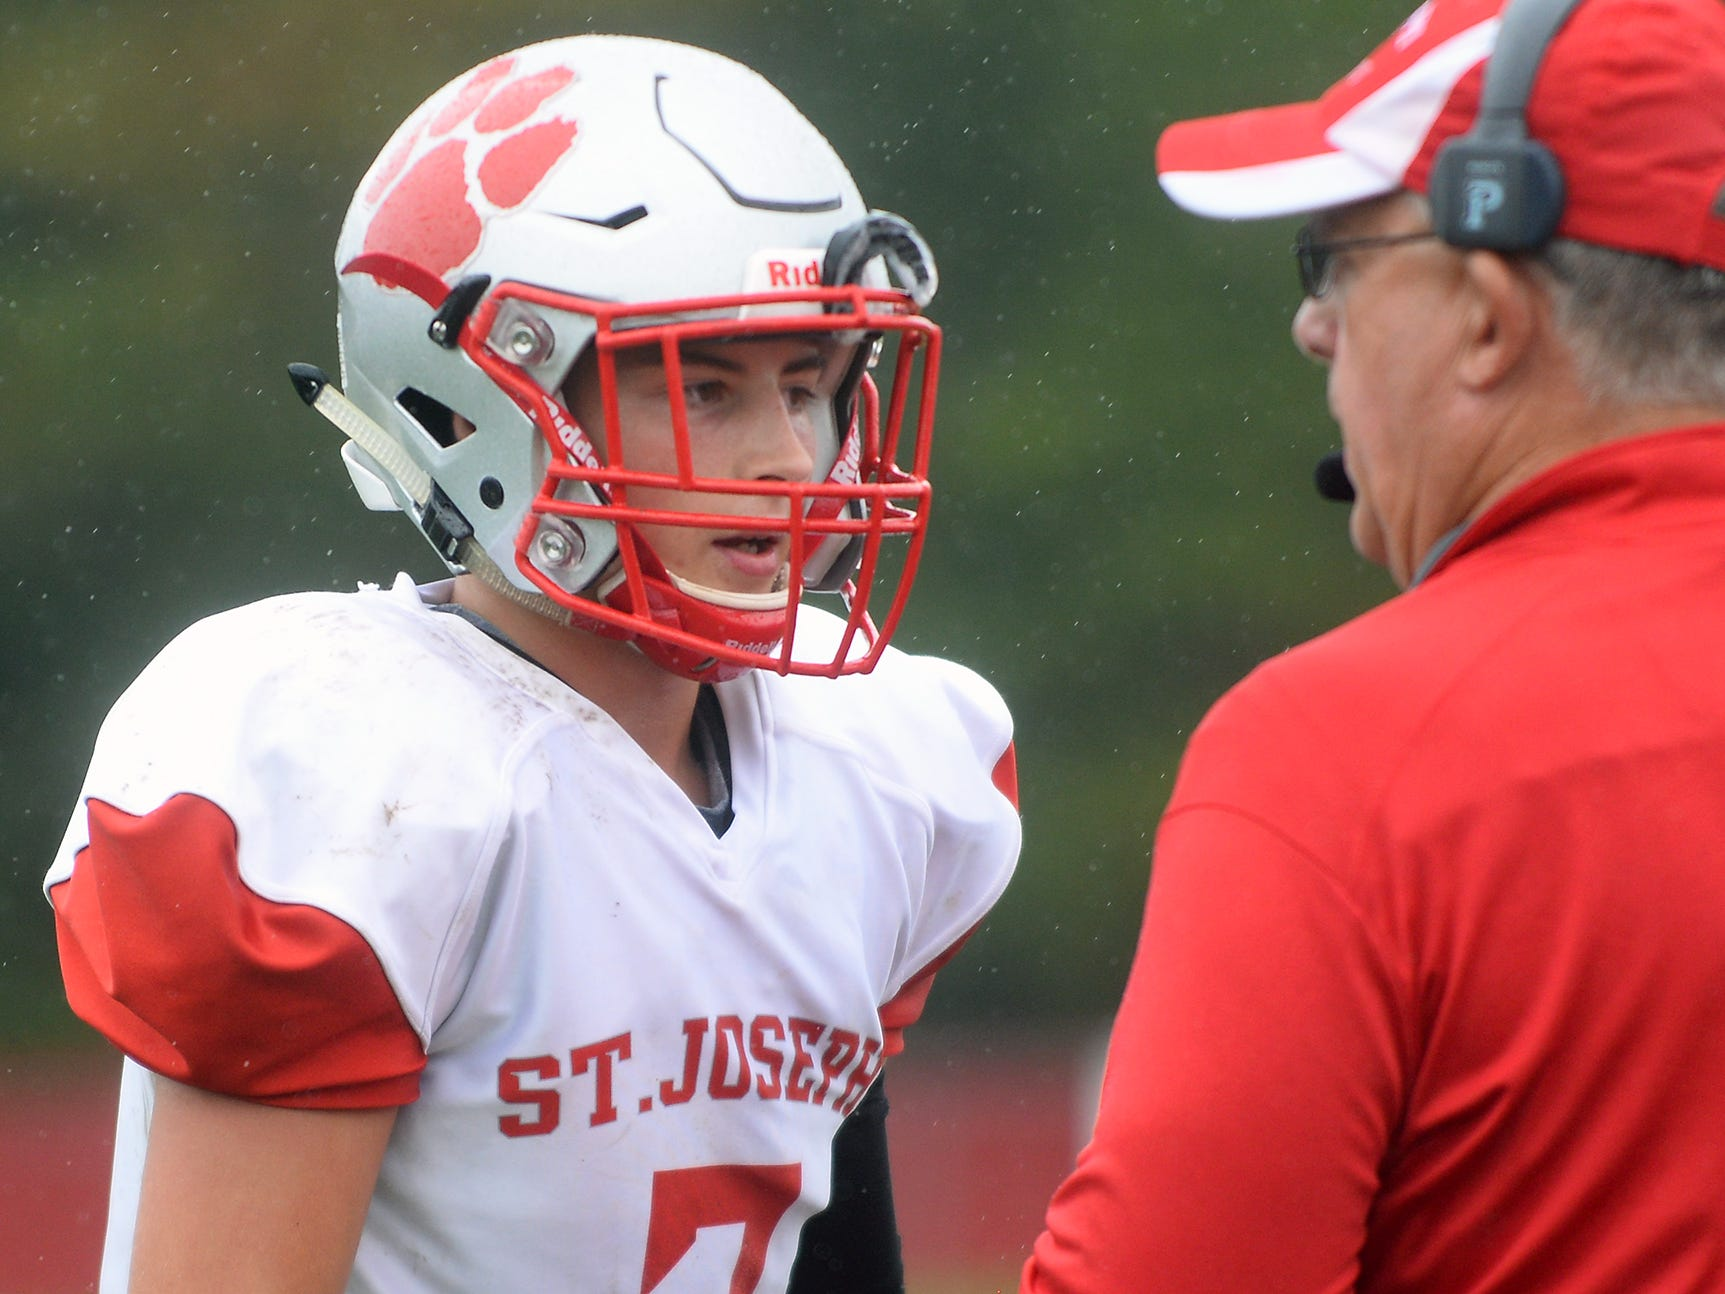 St. Joeseph QB Jayden Shertel (7) talks to coach Rob Neuber during a game against Millville. The Wildcats rolled past the Thunderbolts 34-6 in Hammonton on Saturday, September 8.